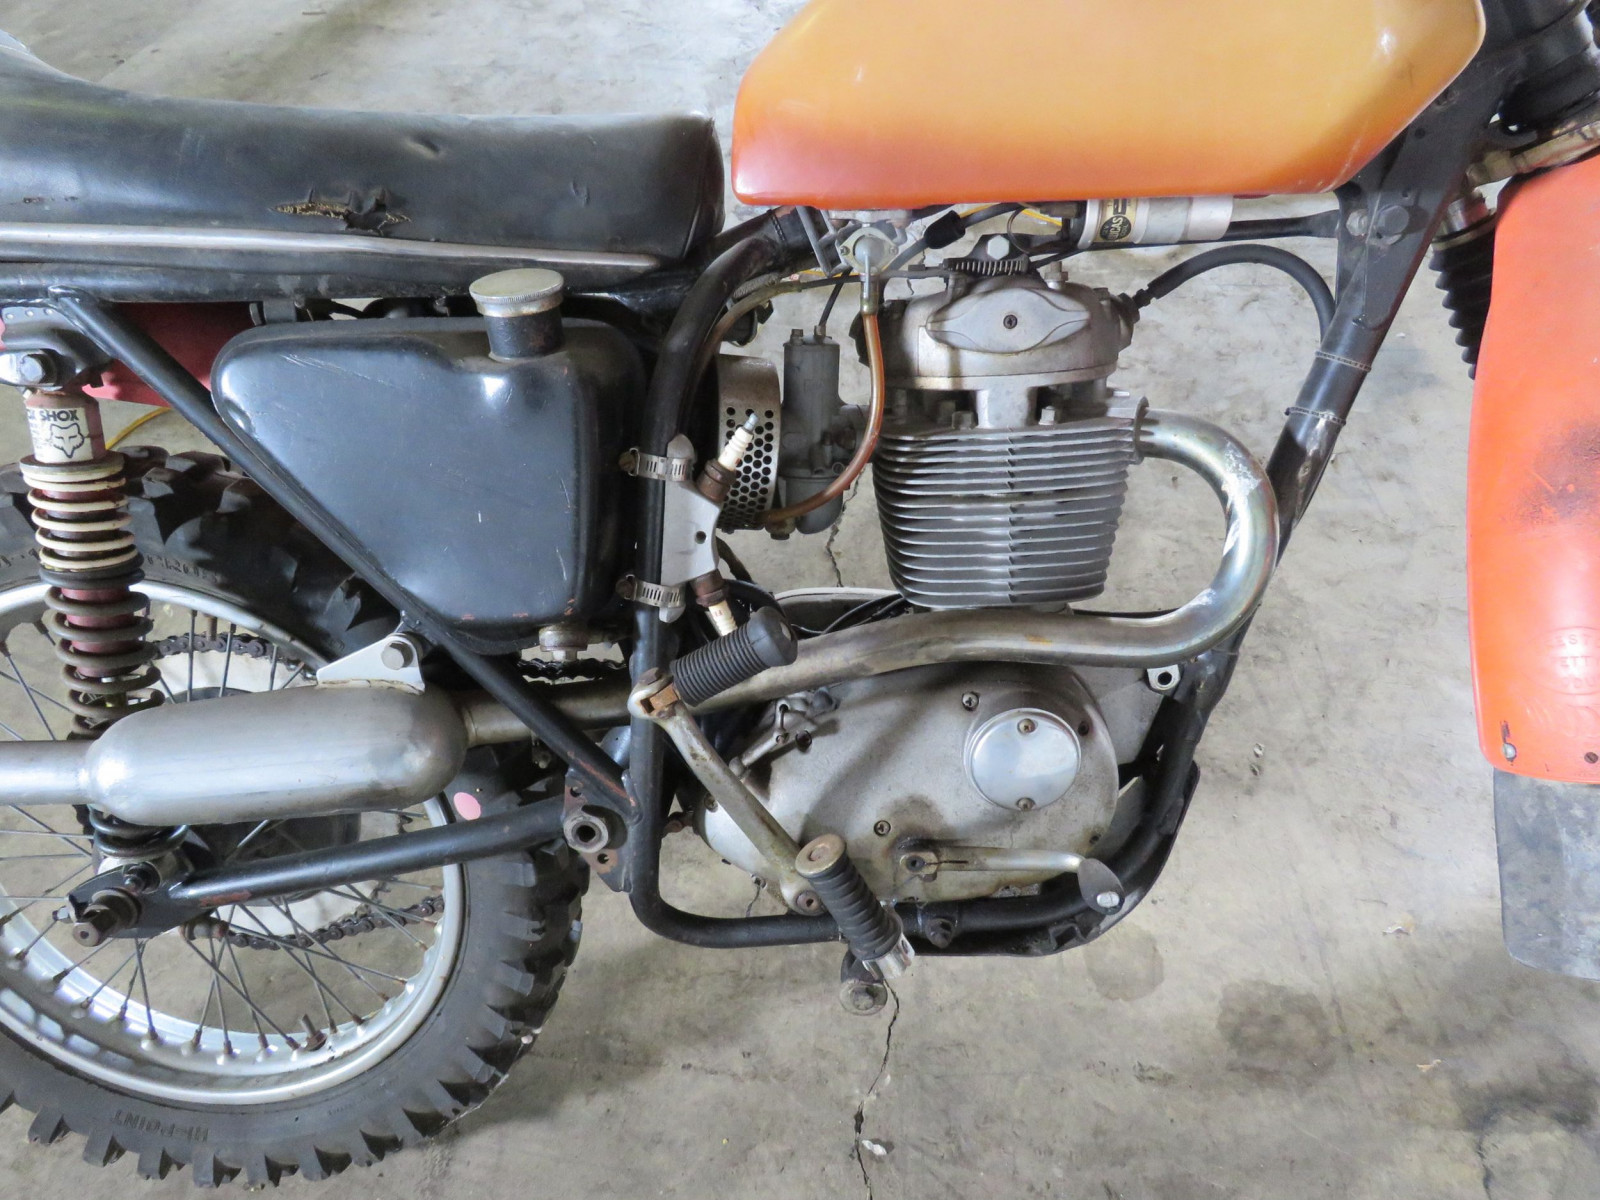 1968 BSA B44 Victor Special Motorcycle - Image 4